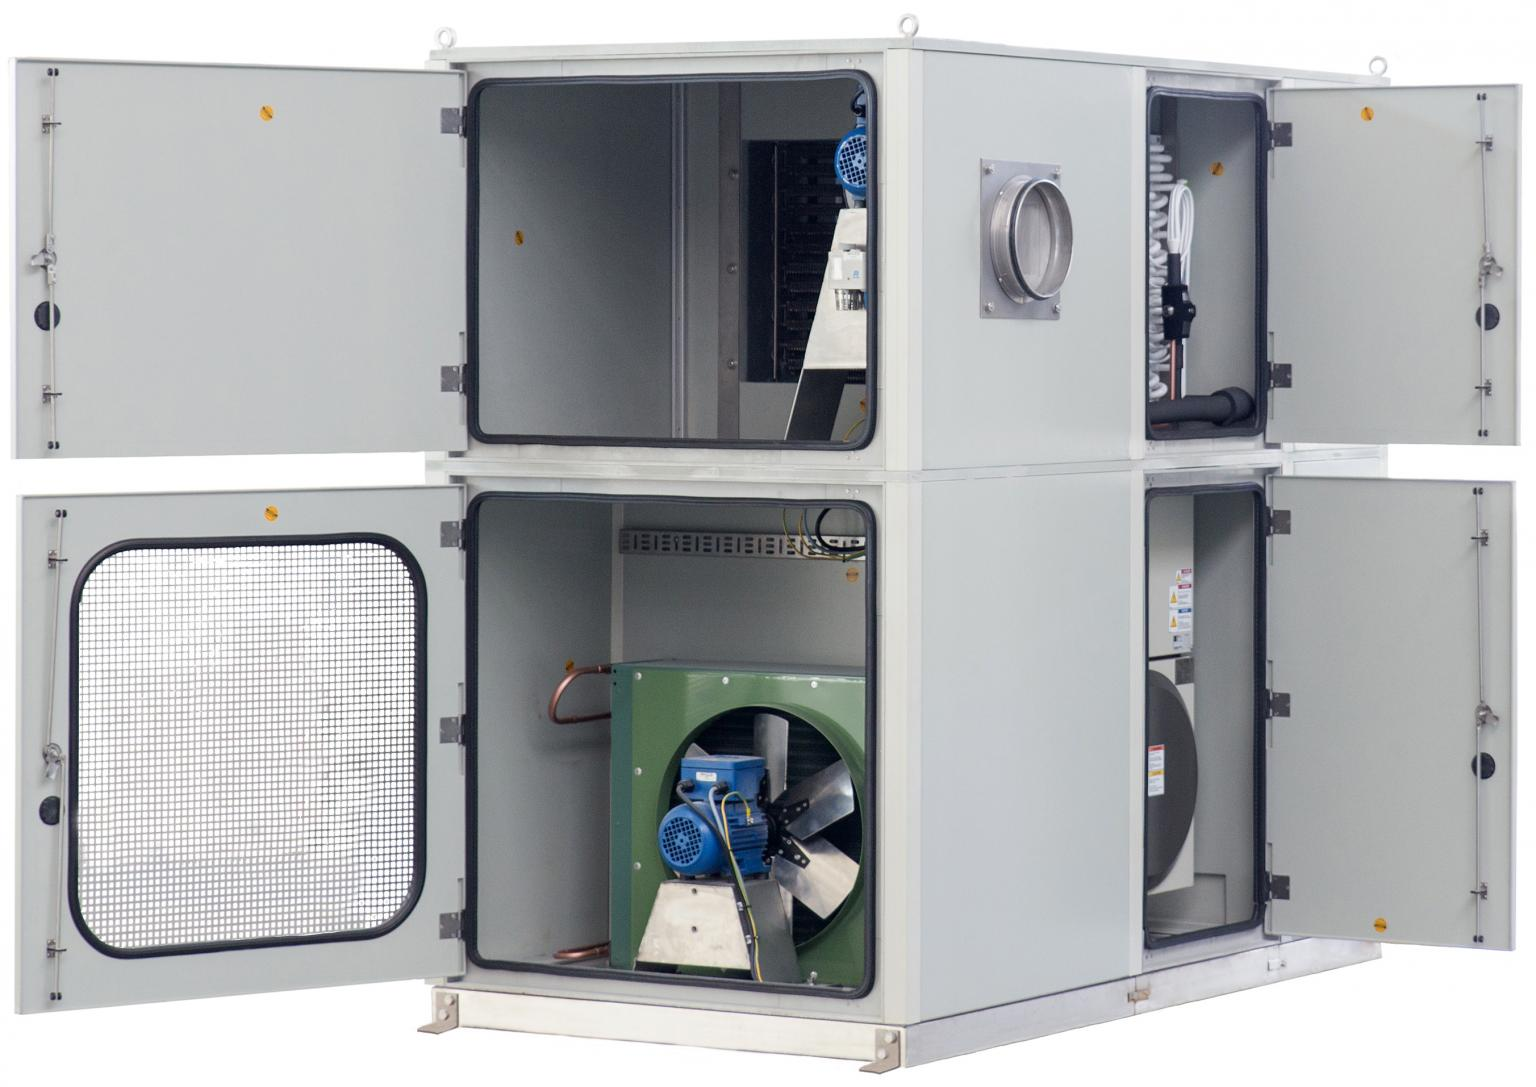 Intertec's new explosion-proof HVAC system is an all-in-one design that handles ventilating, heating, cooling, dehumidifying, air filtering, purging and pressurisation of shelters in hazardous areas